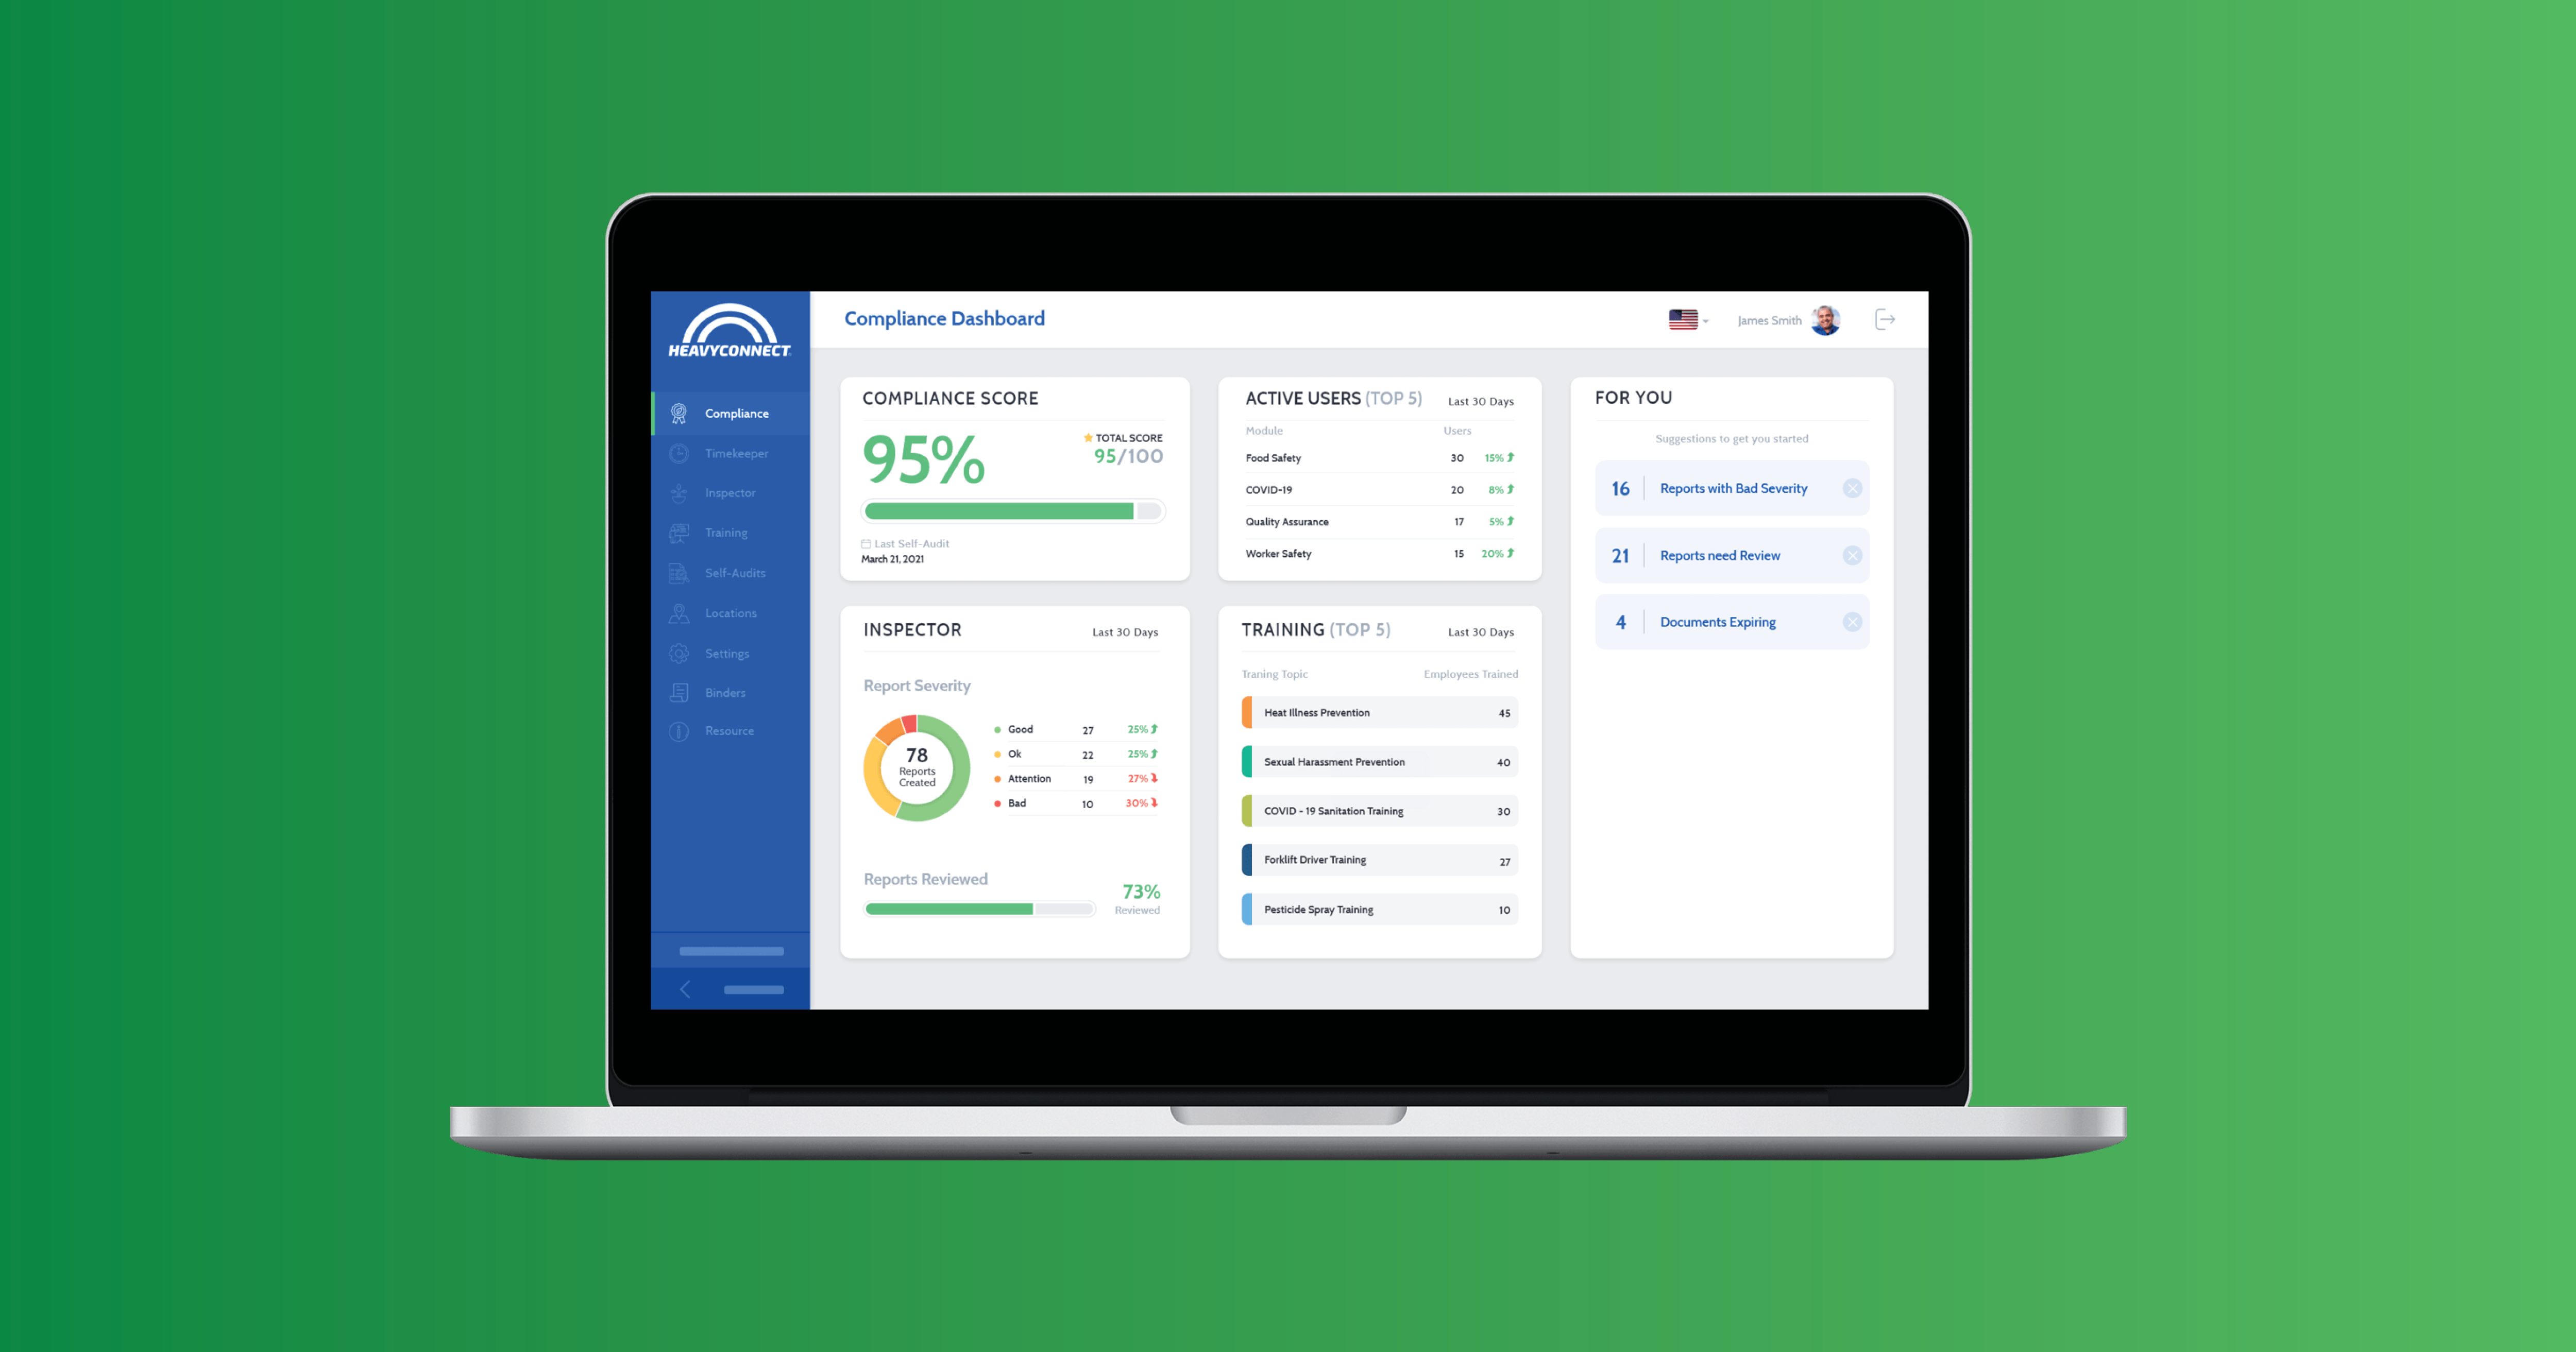 Compliance dashboard on laptop